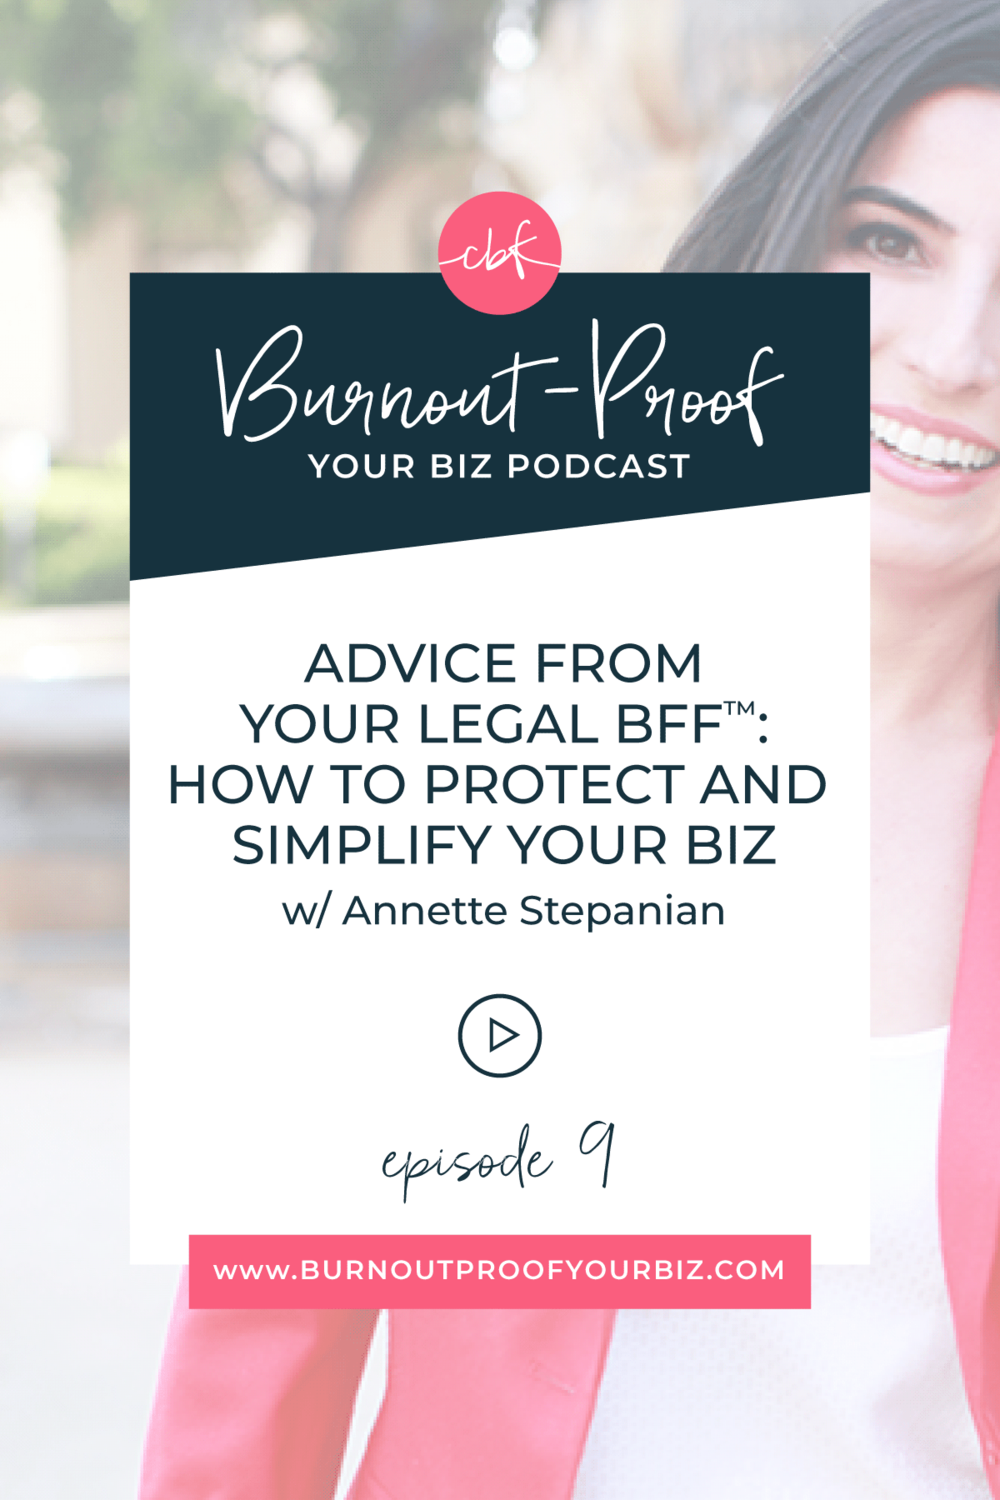 Burnout-Proof Your Biz Podcast with Chelsea B Foster | Episode 009 - Advice From Your Legal BFF™: How to Protect and Simplify Your Biz with Annette Stepanian | Learn how to run your biz and live your dream life on your own terms without the fear of burnout.